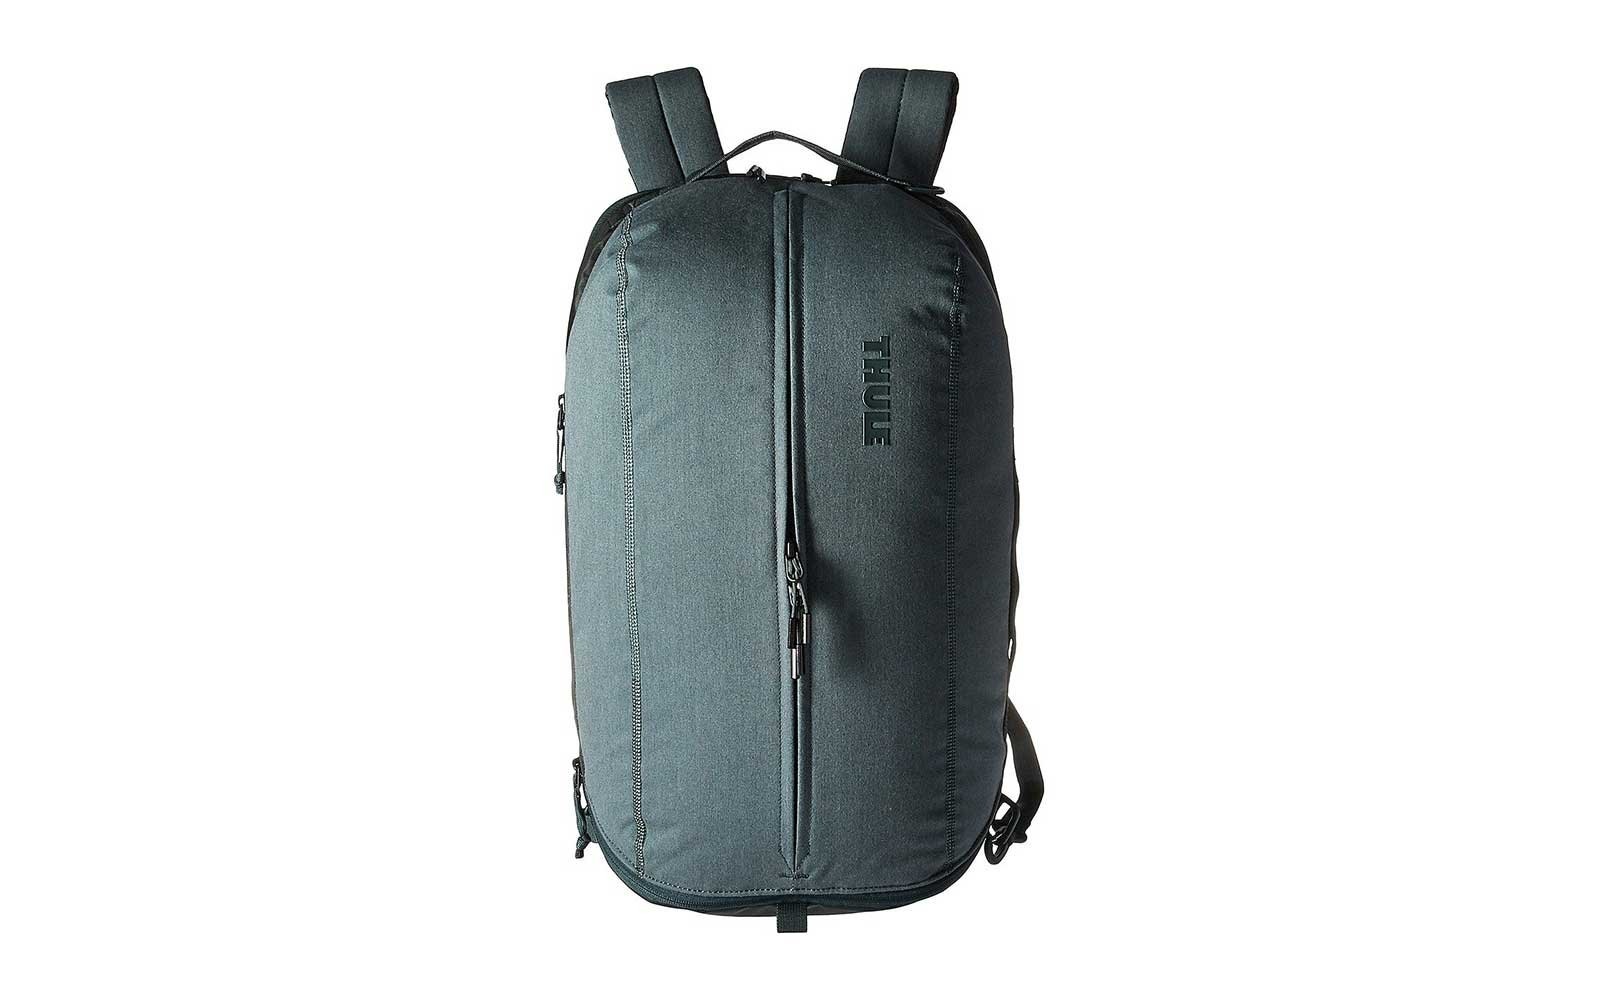 Thule Vea Convertible backpack for sale at zappos